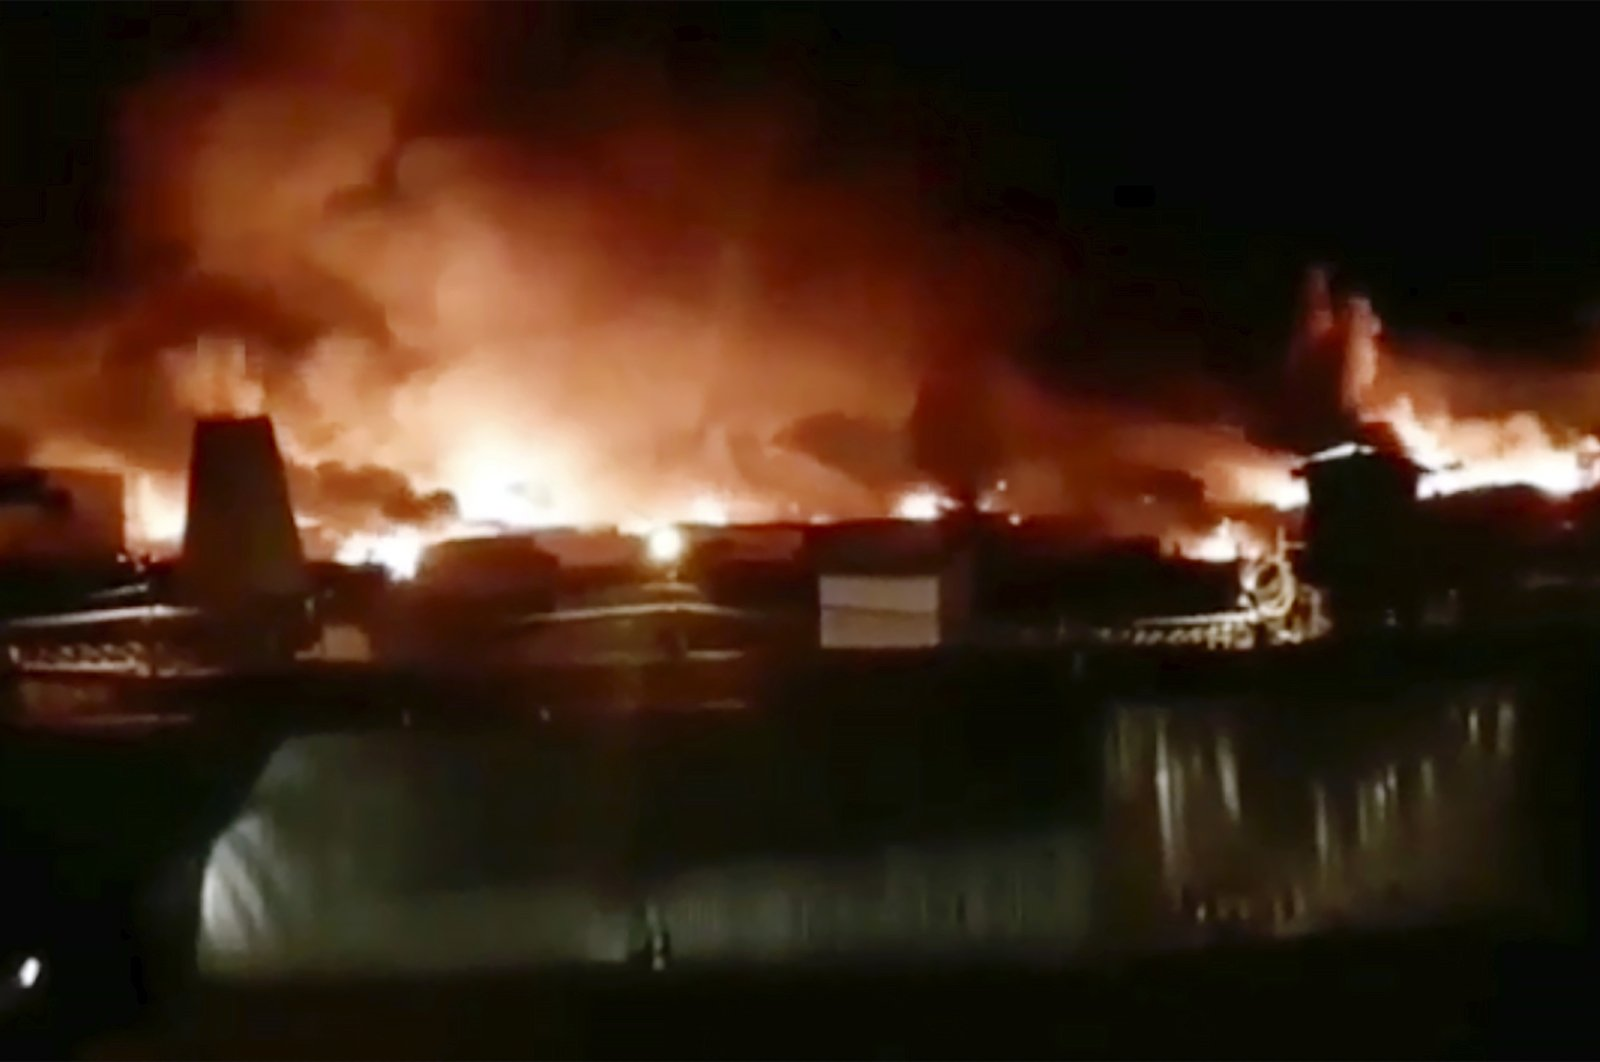 """In this image taken from video provided by Instagram account @incident.38, a fire is blazing at a prison colony where inmates and guards have clashed in Angarsk, 4,000 kilometers (2,500 miles) east of Moscow, Friday, April 10, 2020. Russian officials say a large fire is blazing at a prison in Siberia where inmates and guards have clashed. There was no official information about casualties or damage Friday, but Pavel Glushenko, a local human rights activist, said on social media that """"full-scale hostilities"""" were taking place at the maximum-security prison. (AP Photo)"""